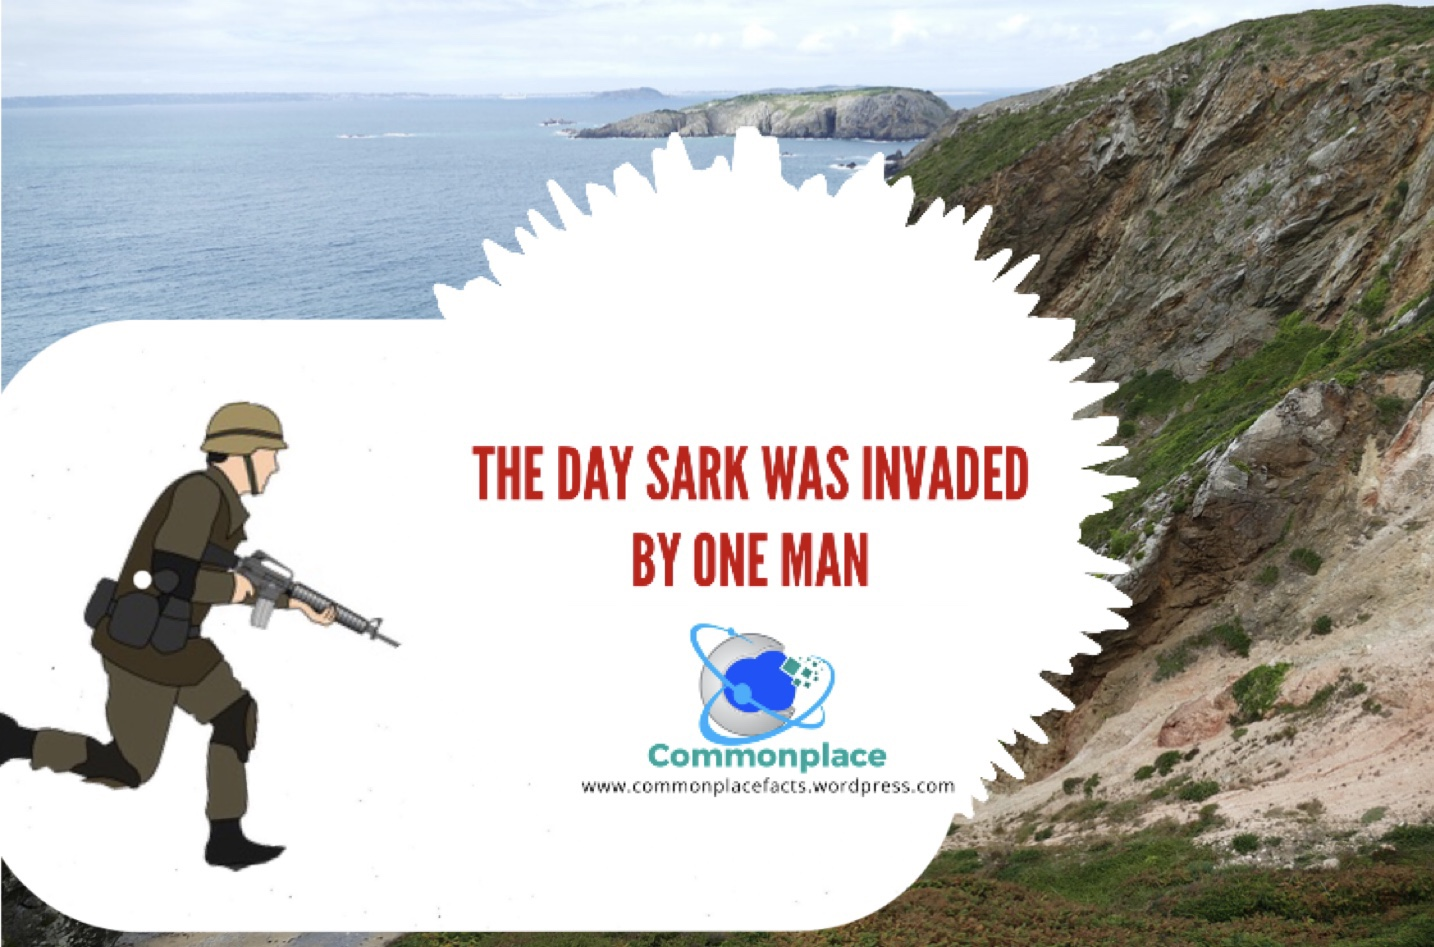 #Sark #history #invasions The Day Sark Was Invaded By One Man